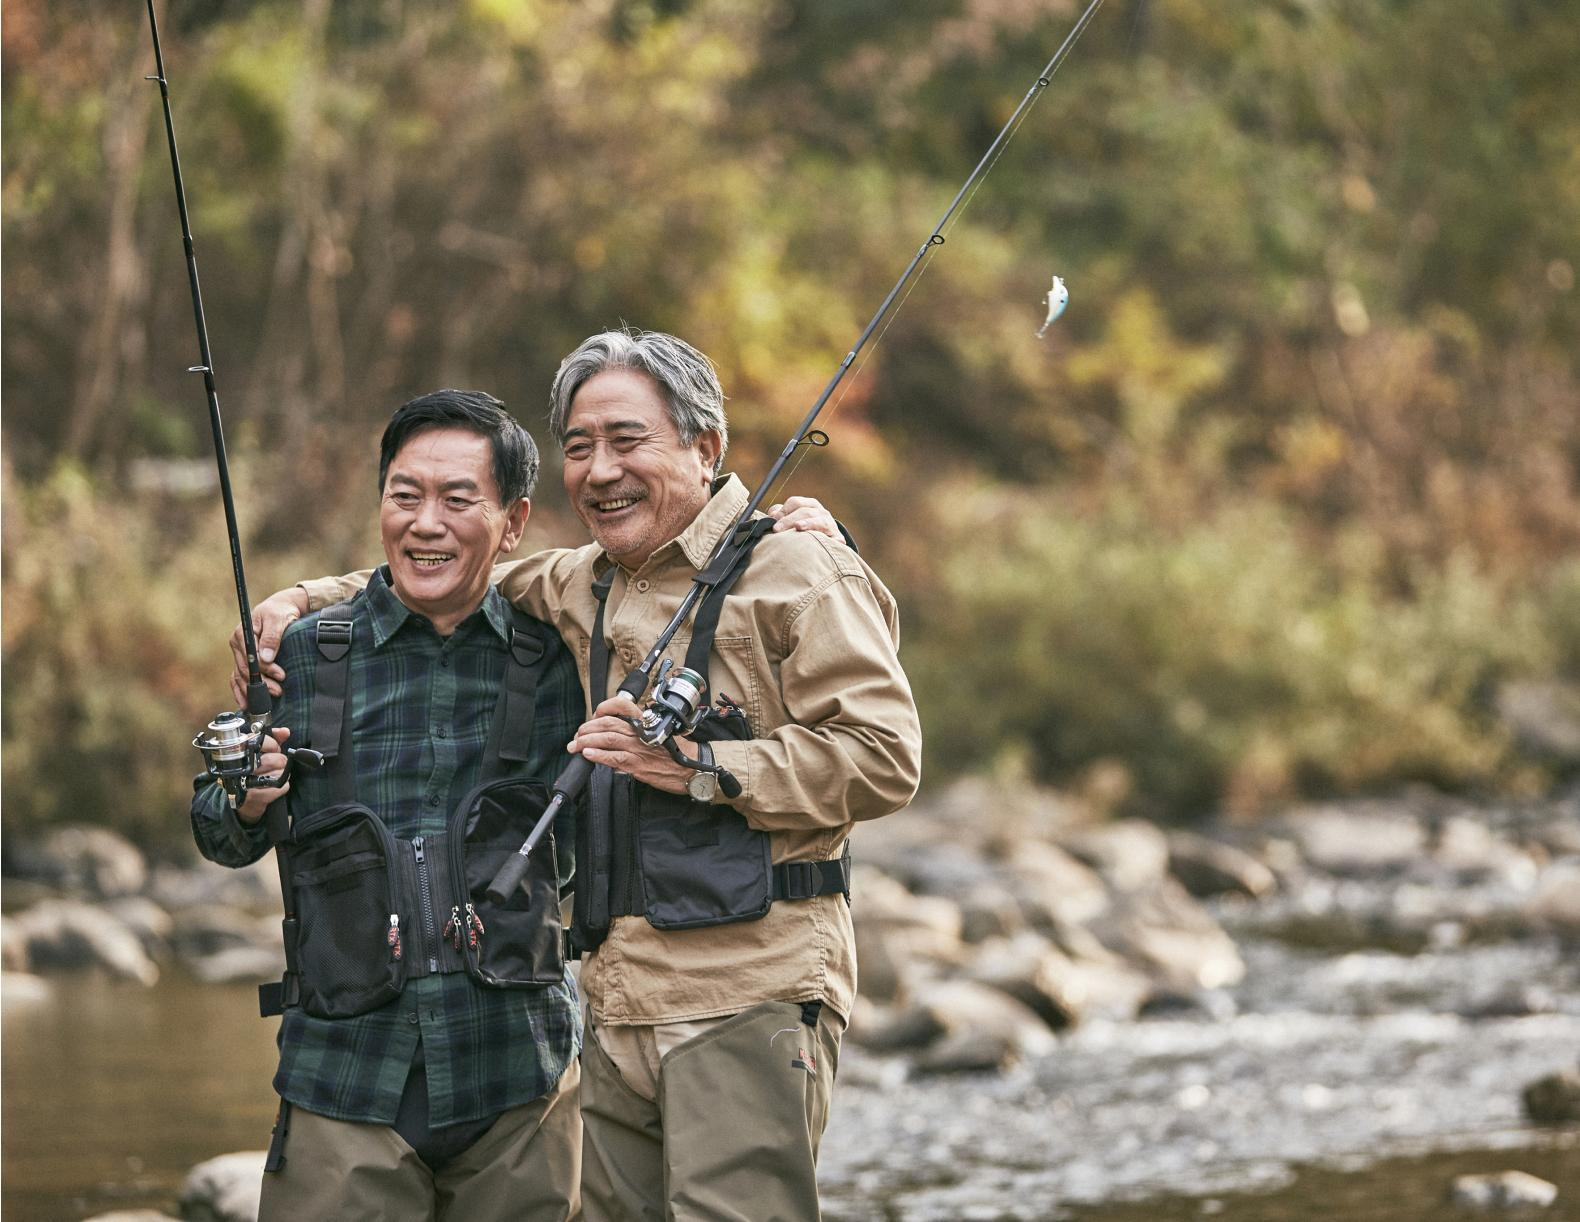 Retirement Planning at Any Stage